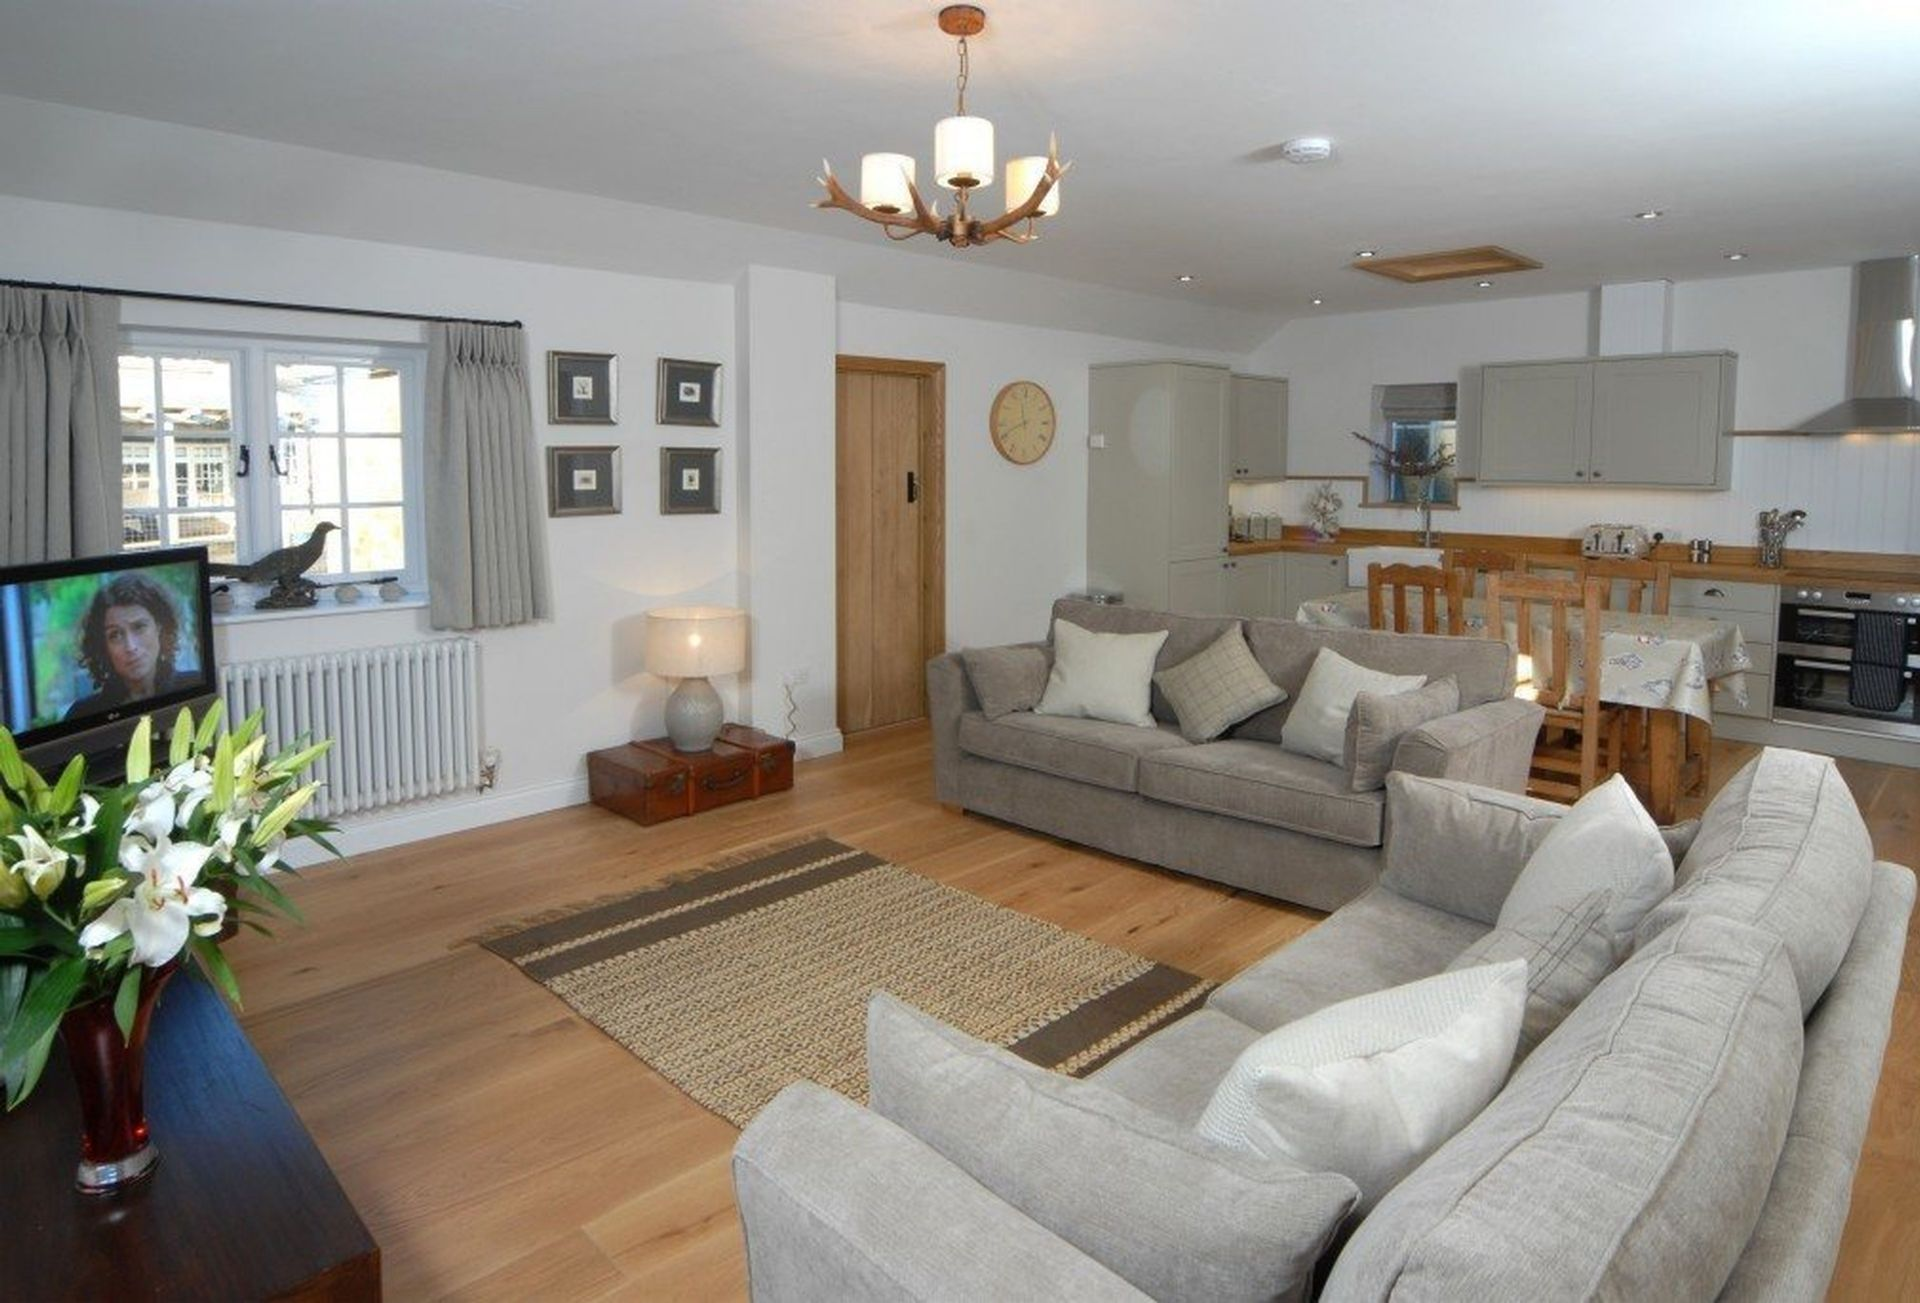 A view of the open plan Living area